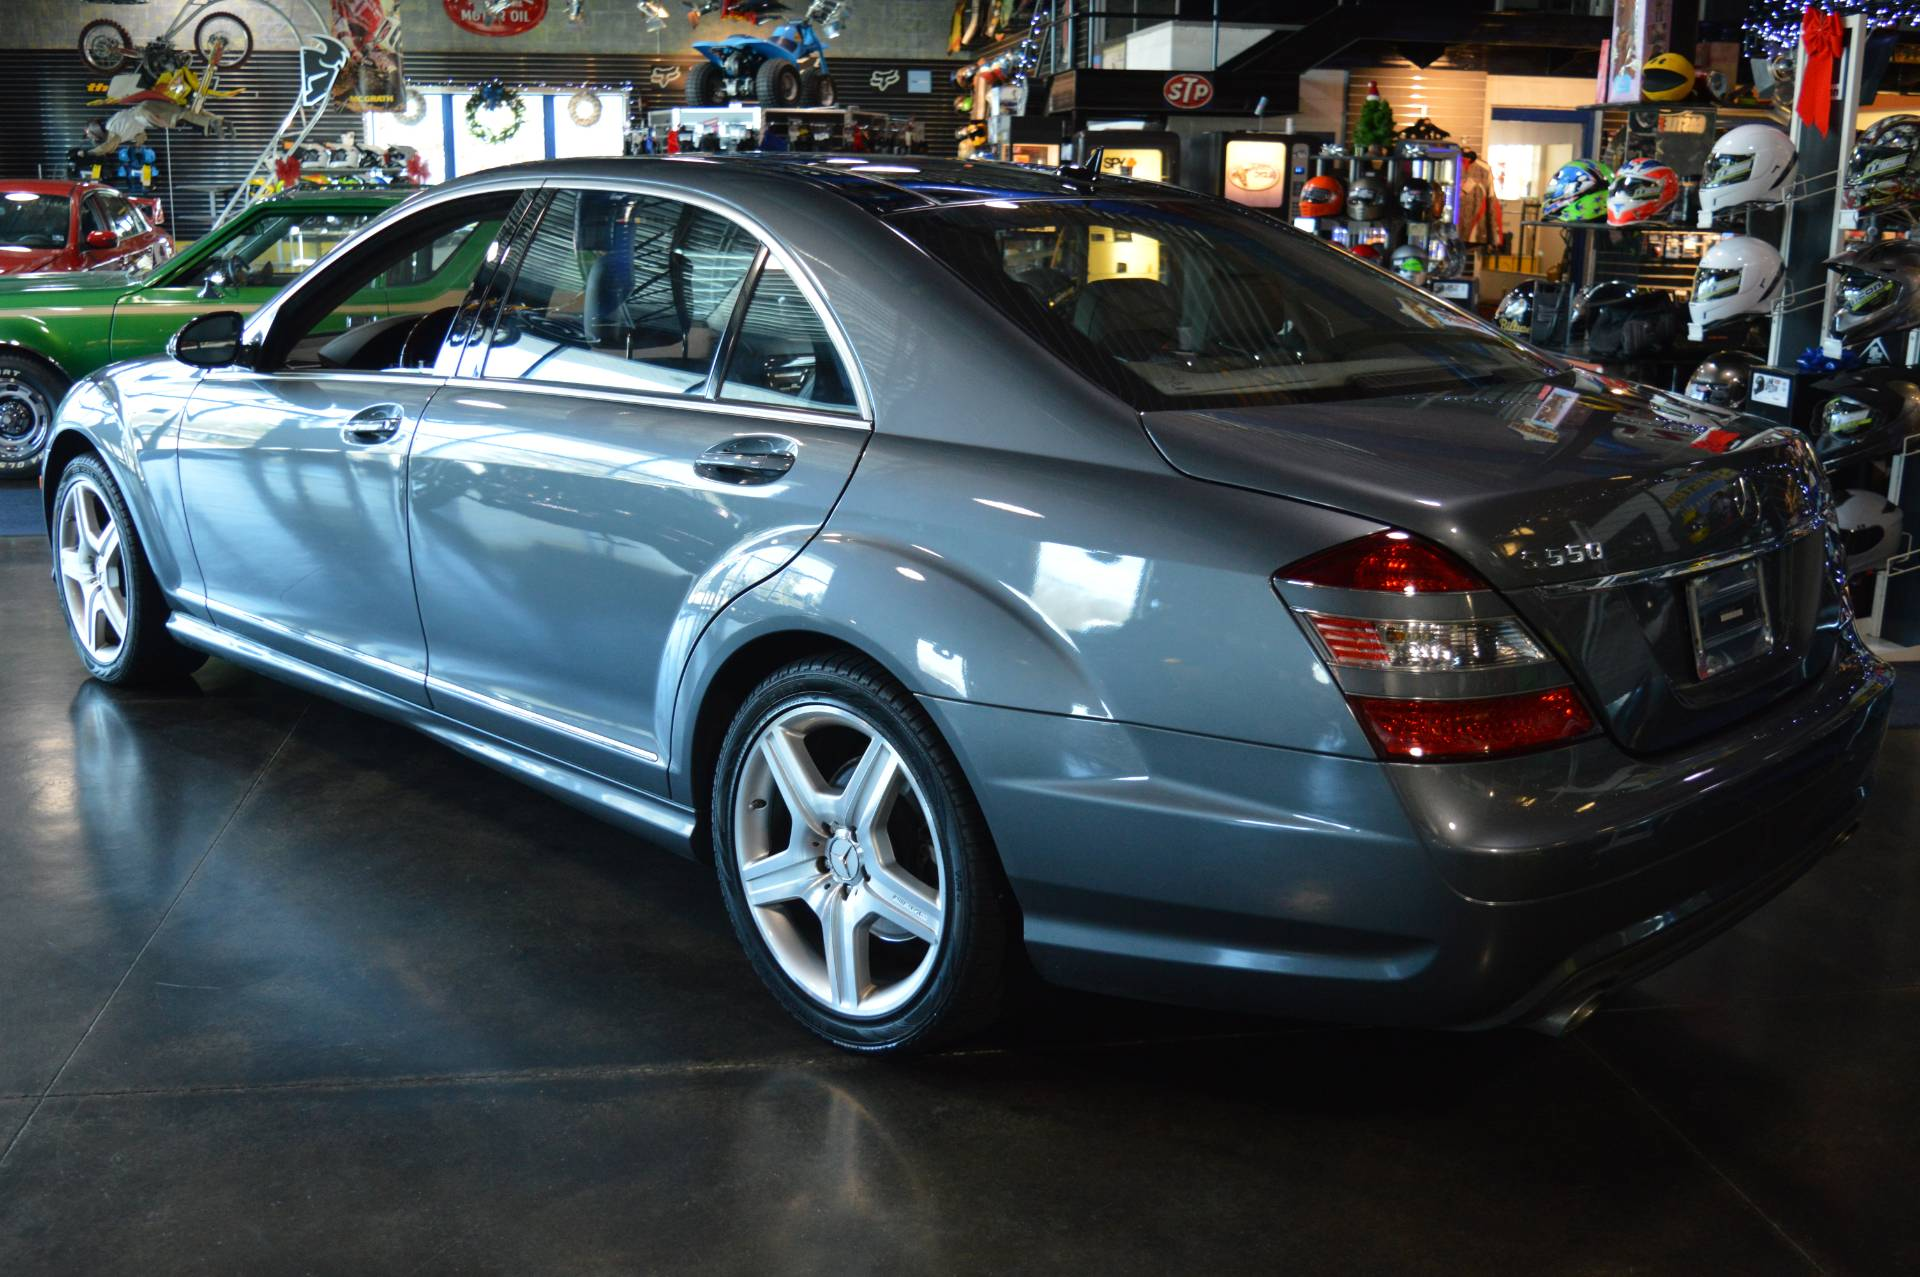 2007 Mercedes-Benz S550 4MATIC in Derry, New Hampshire - Photo 3